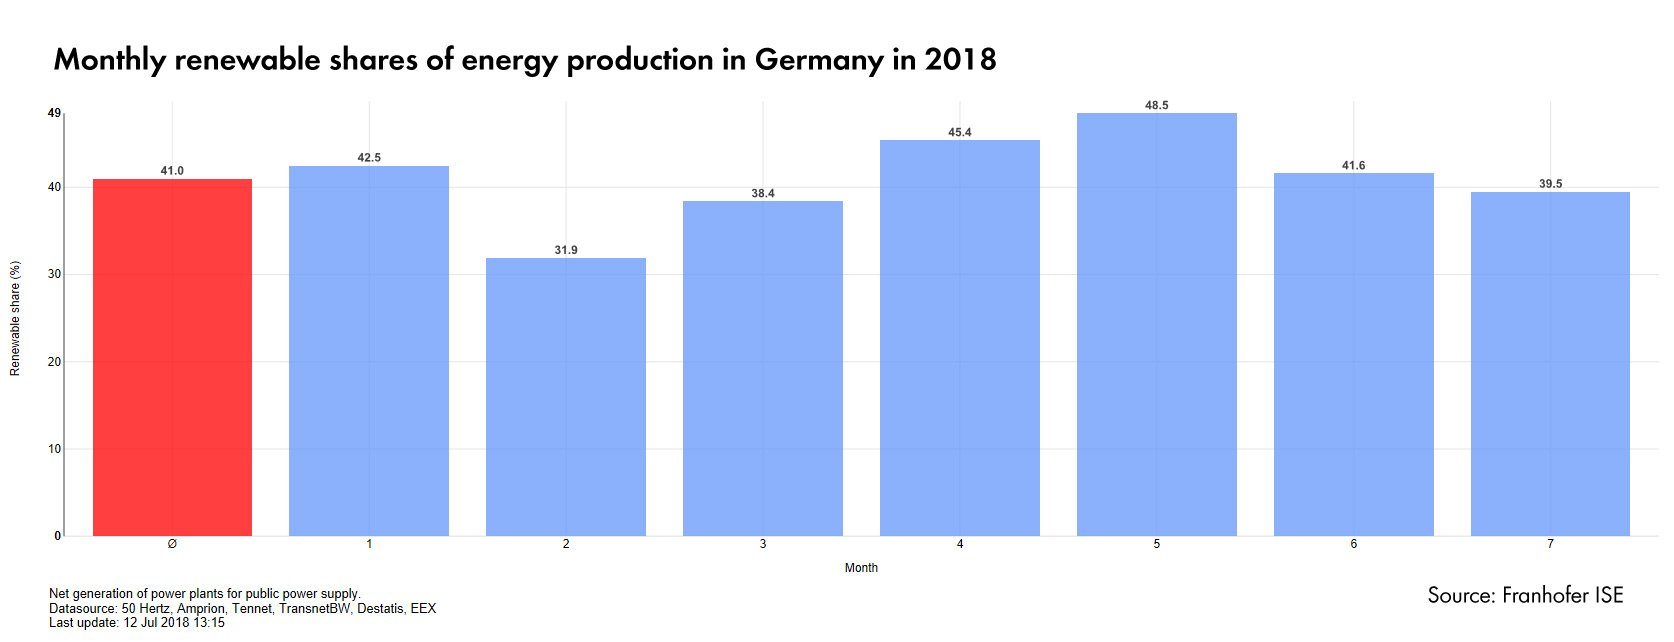 Five Reasons Integrated Energy Is So Important Sunny Der Sma Green Blog Useful Windmill Power Systems In The Future Too Much Sun Or Wind Could Lead To Peaks Production That Exceed Demand Renewable Plants Then Must Be Limited And Valuable